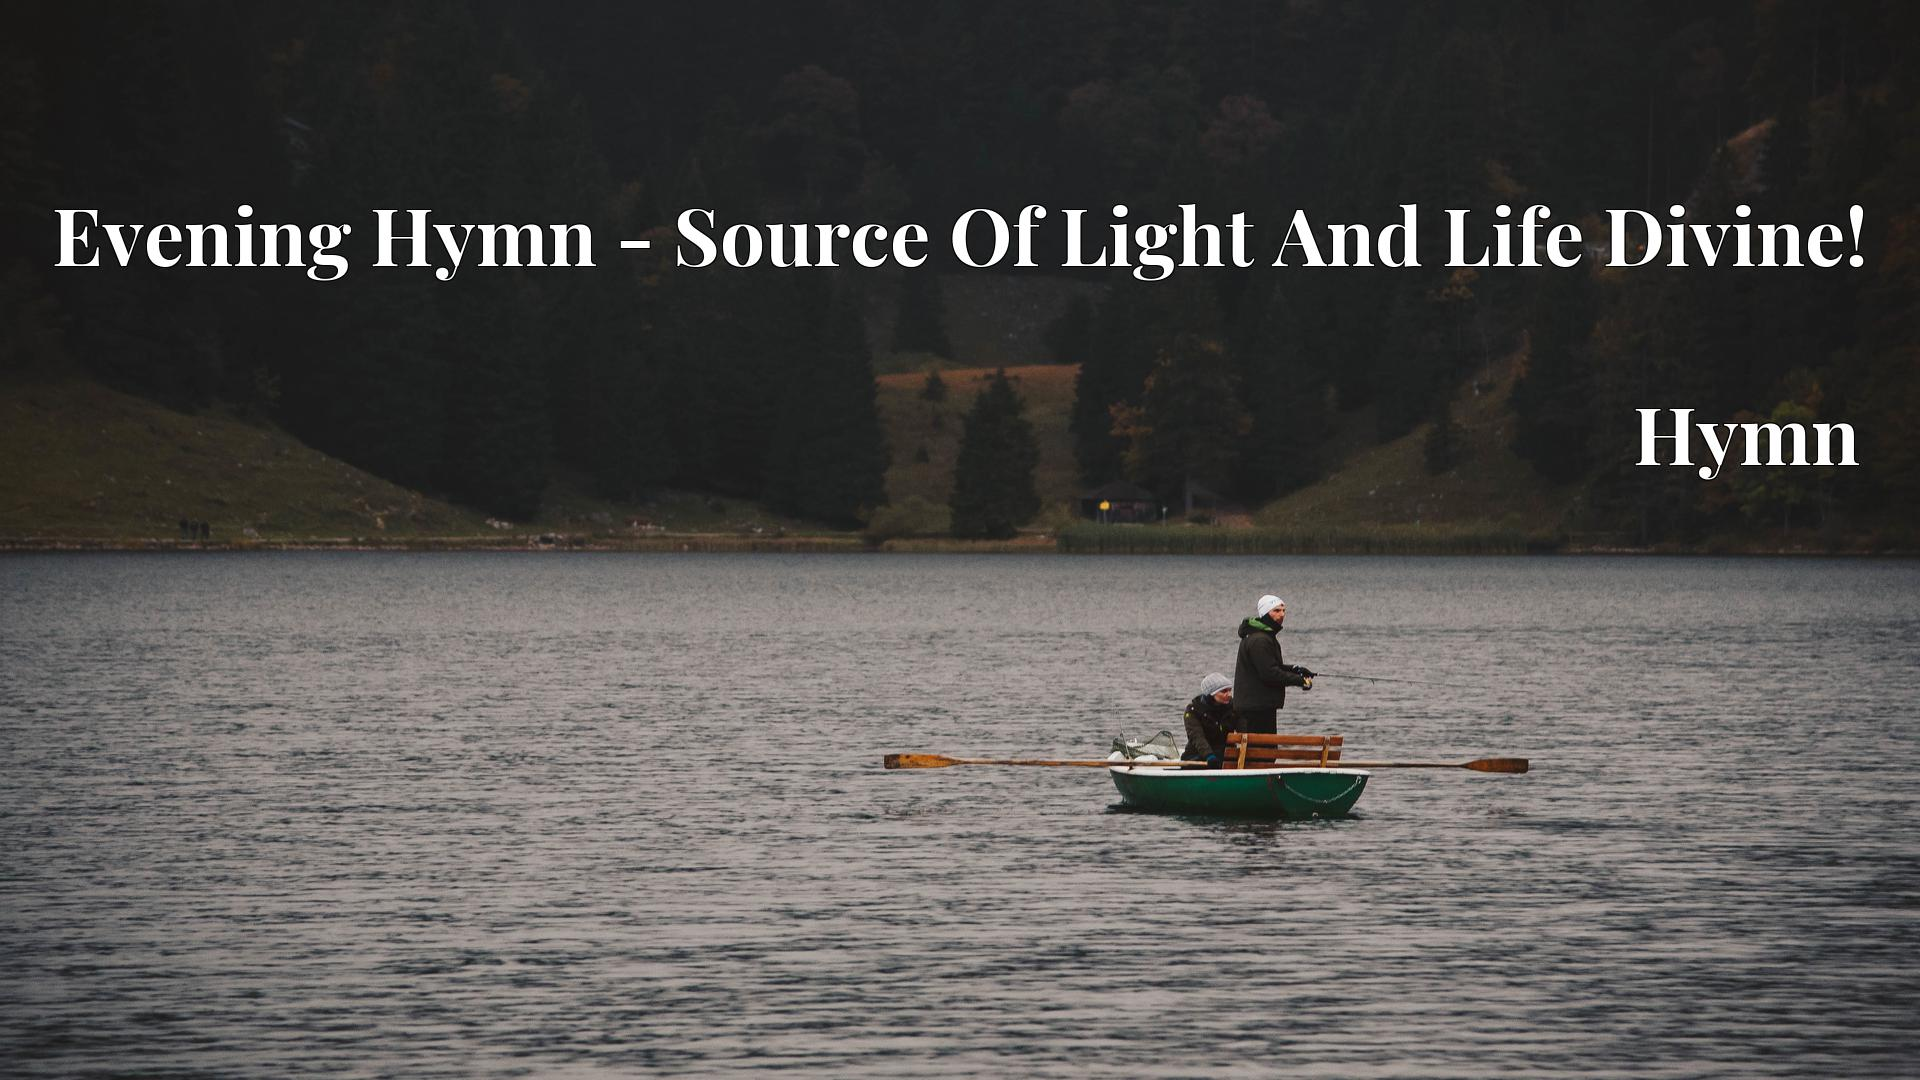 Evening Hymn - Source Of Light And Life Divine! - Hymn